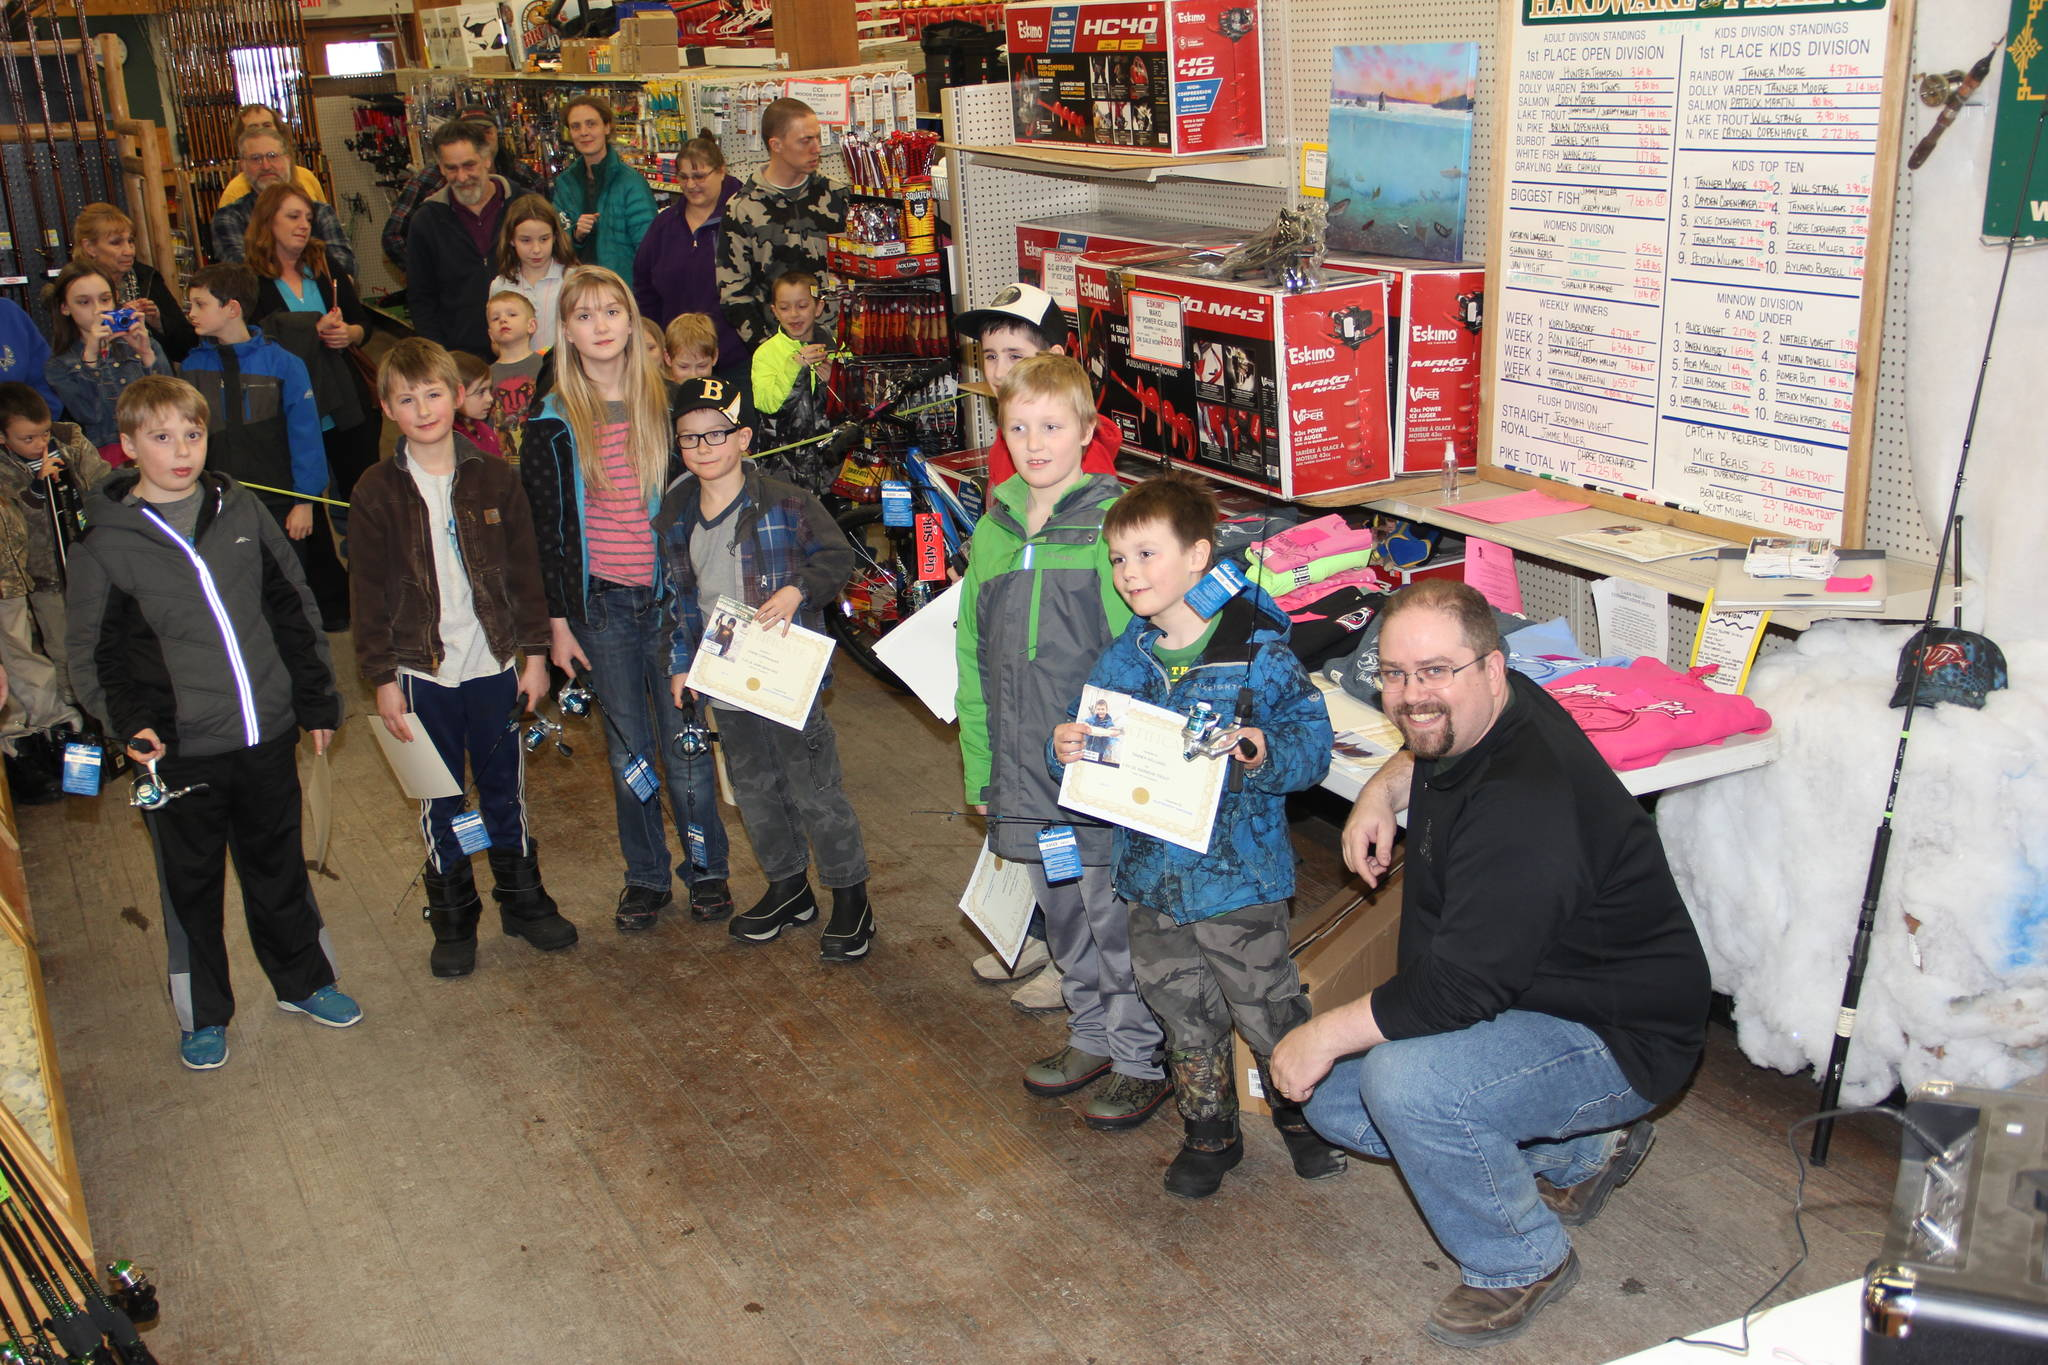 Trustworthy co-owner Scott Miller presents kid's division winners with prizes and certificates.